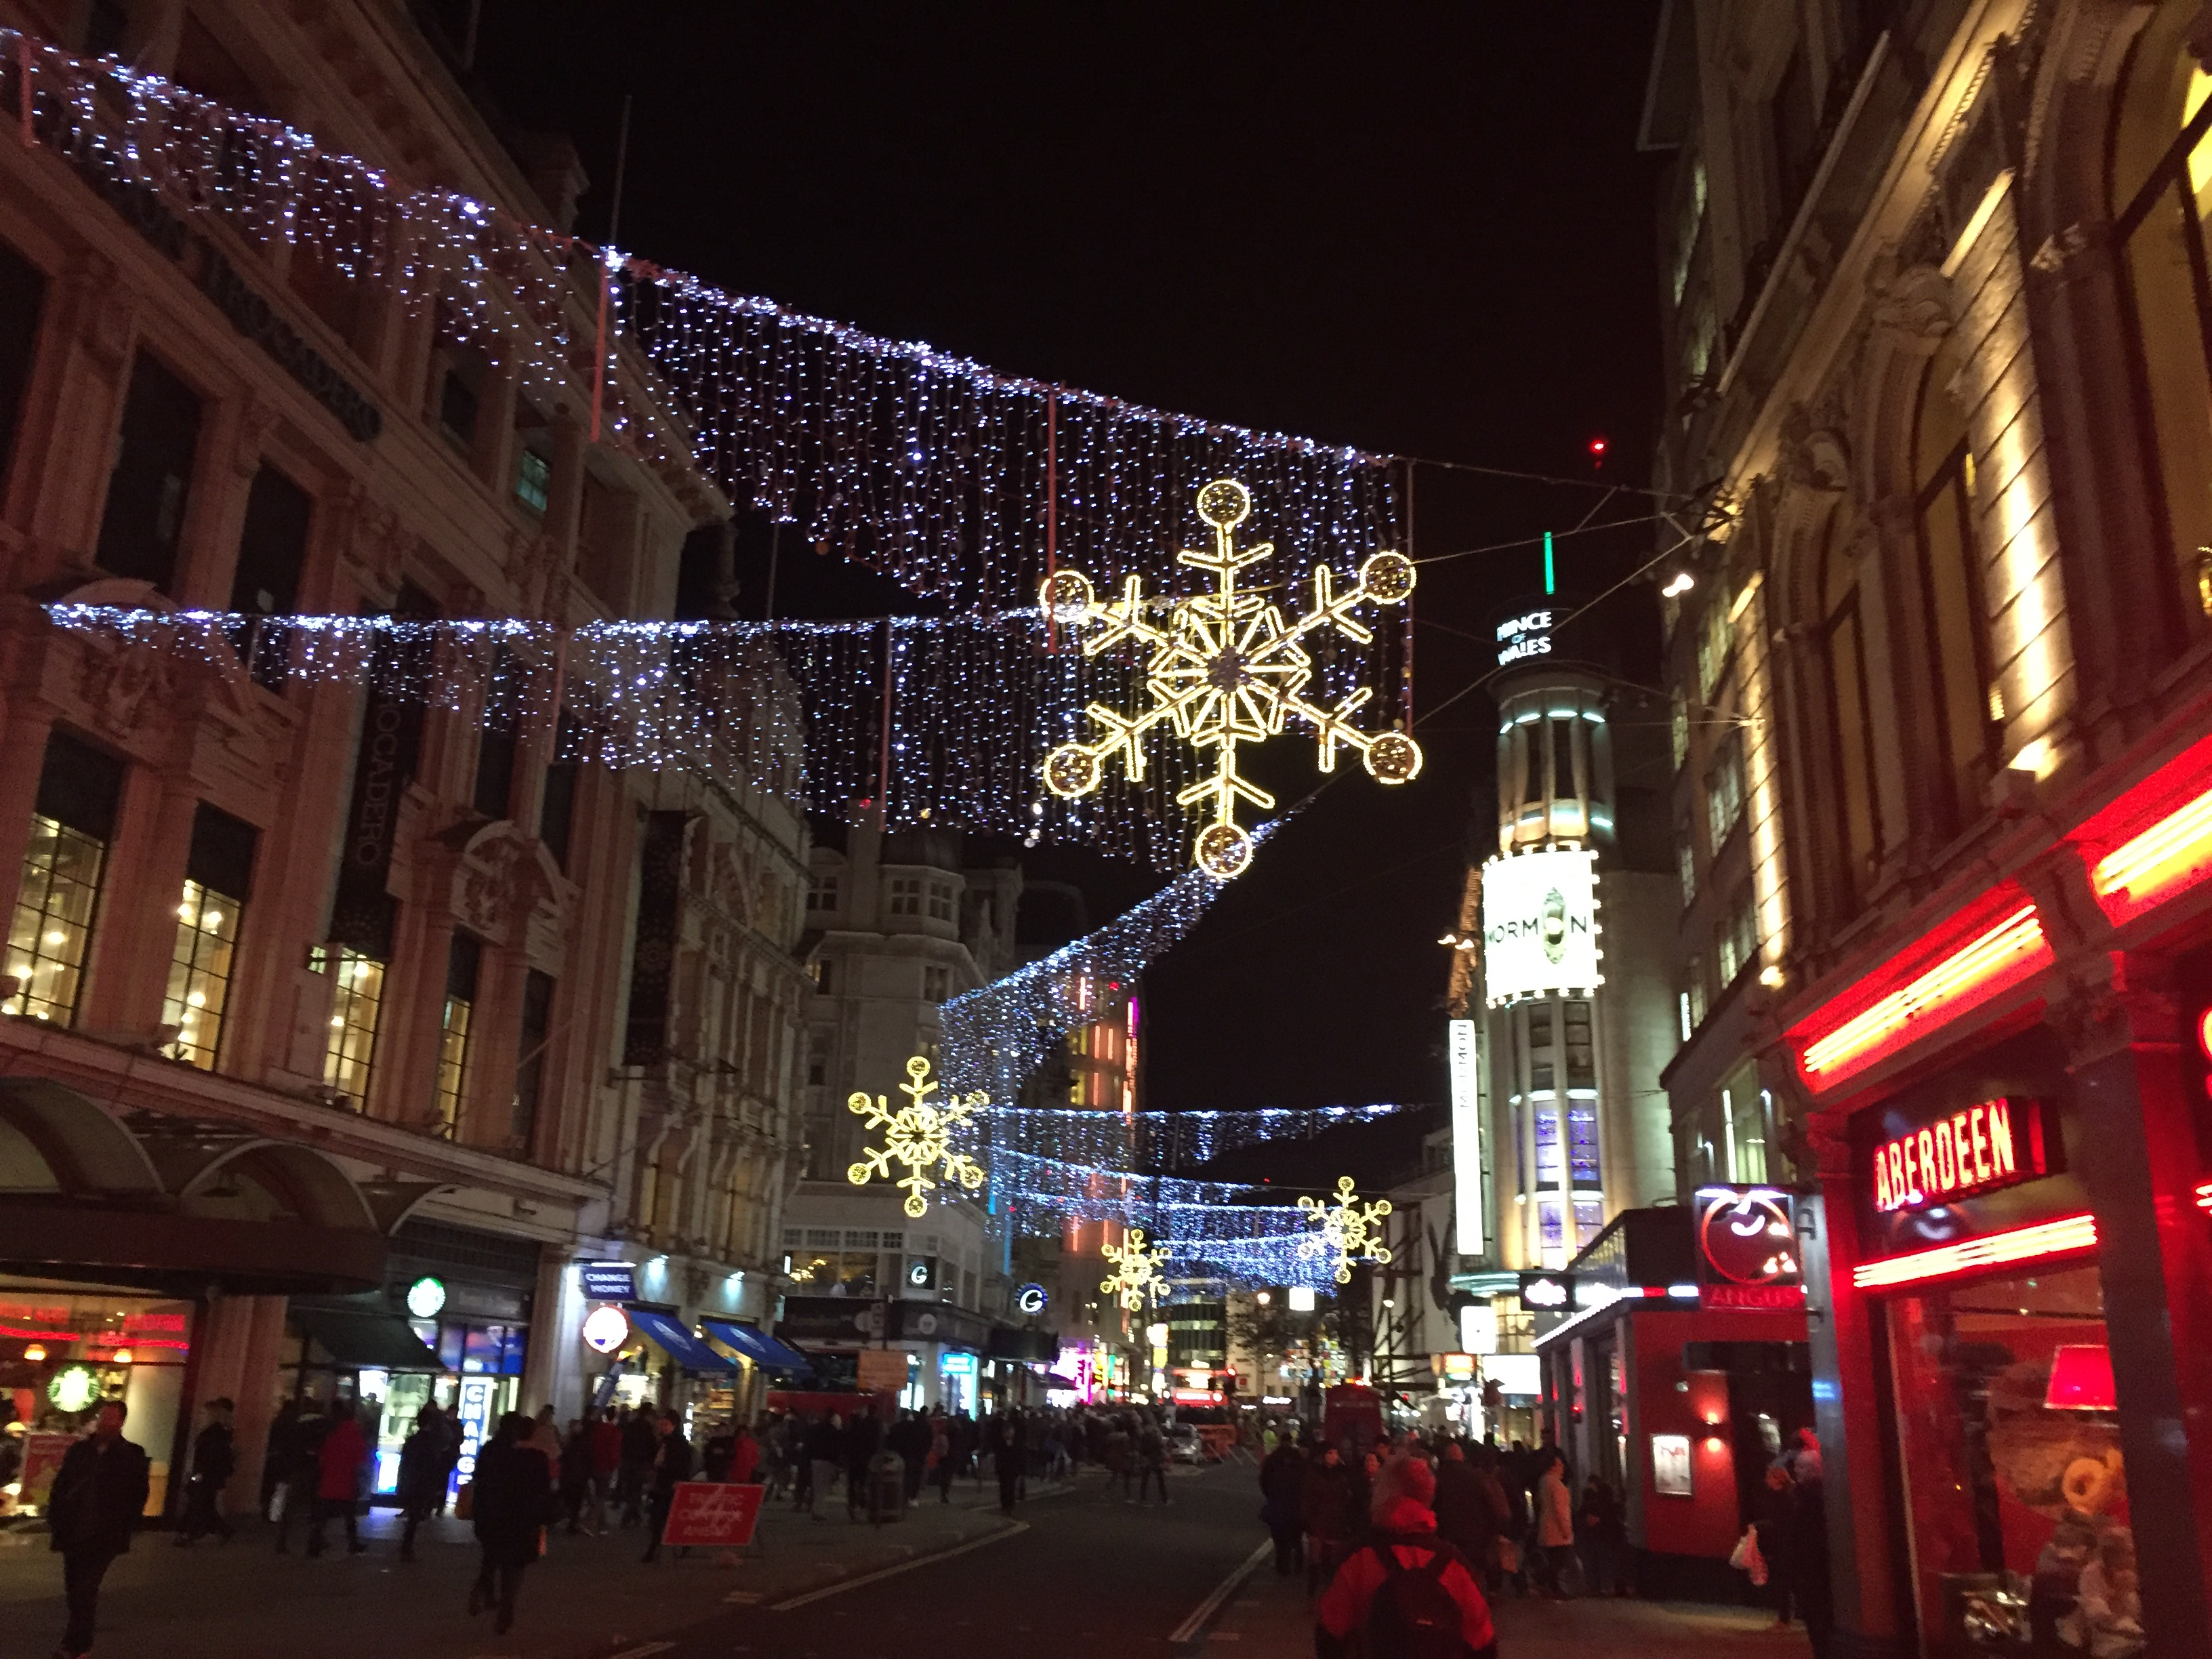 christmas lights grace the streets of london the city comes alive during the holiday season